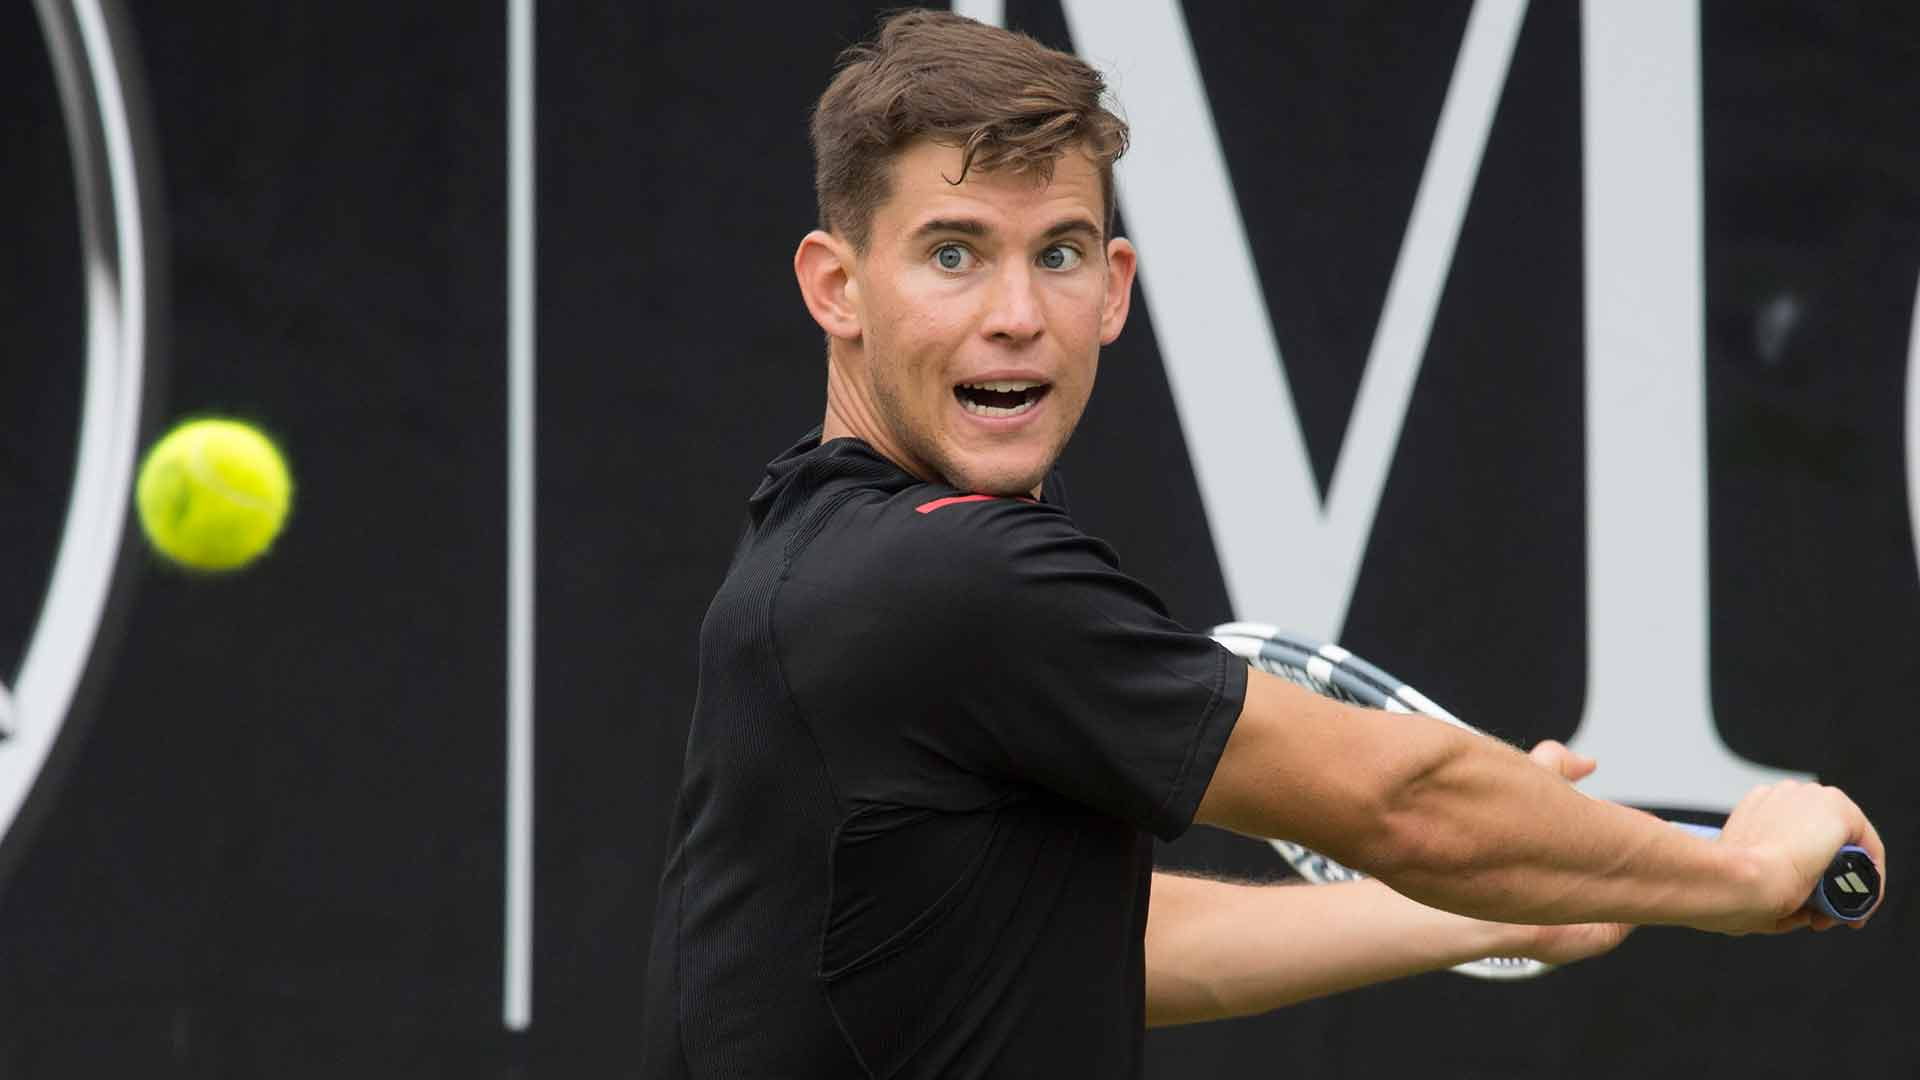 Dominic Thiem will resume his MercedesCup final in Stuttgart with Philipp Kohlschreiber on Monday.